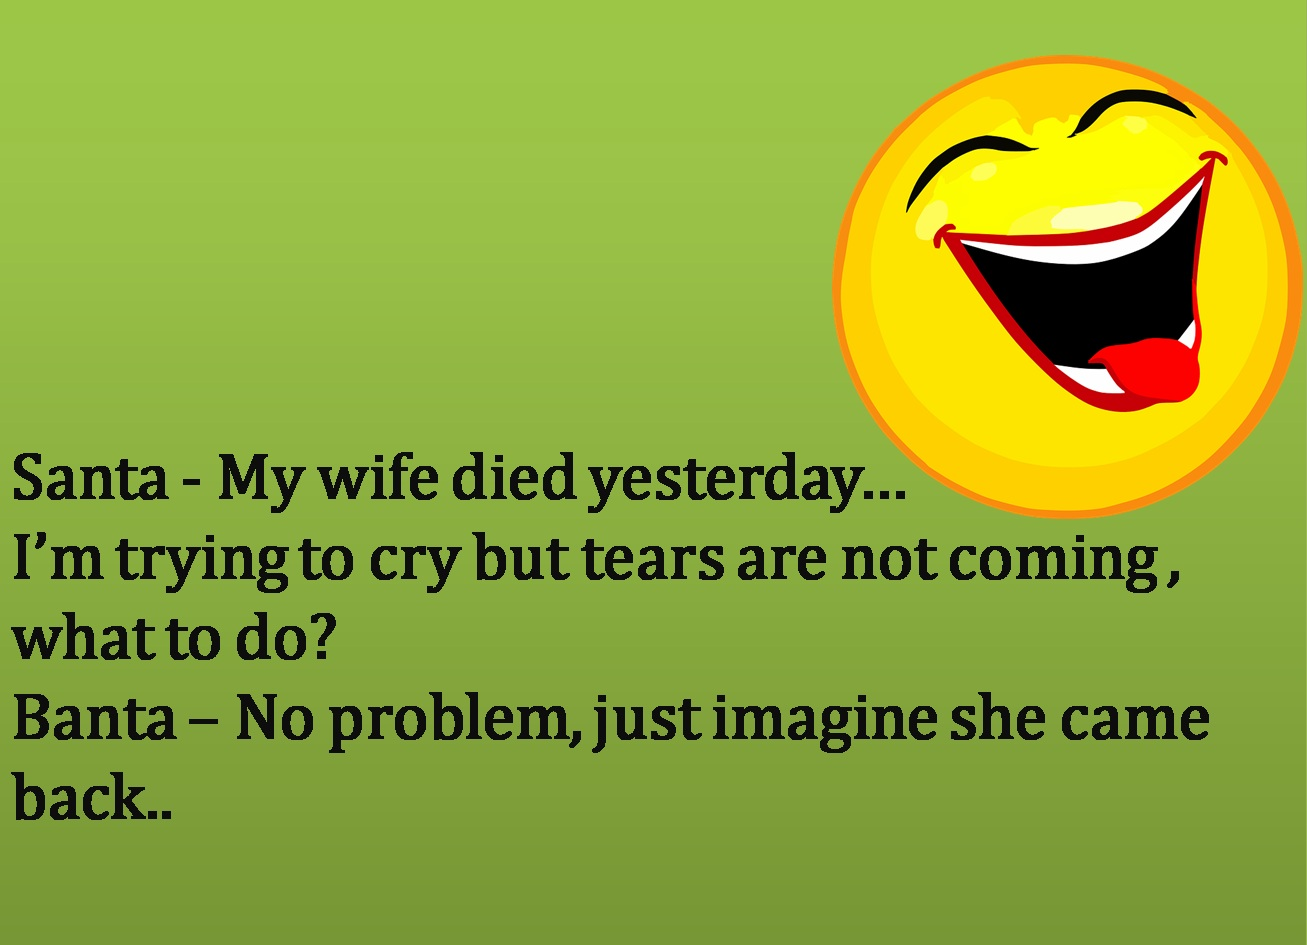 Santa - My wife died yesterdayIm trying to cry but tears are not coming , what to doBanta  No problem, just imagine she came back..